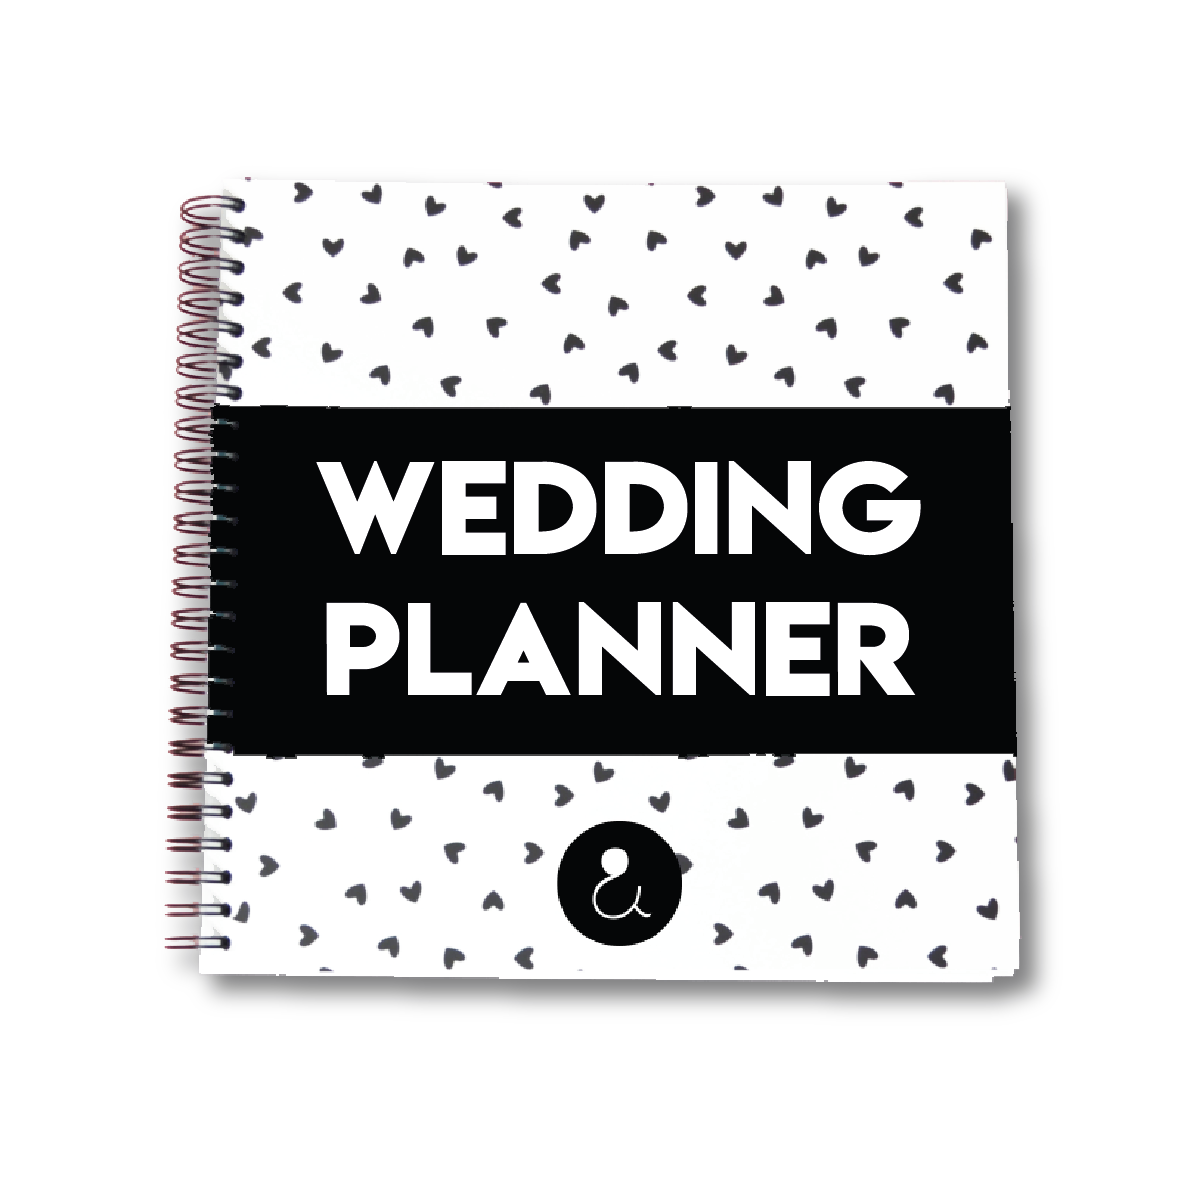 Weddingplanner | monochrome